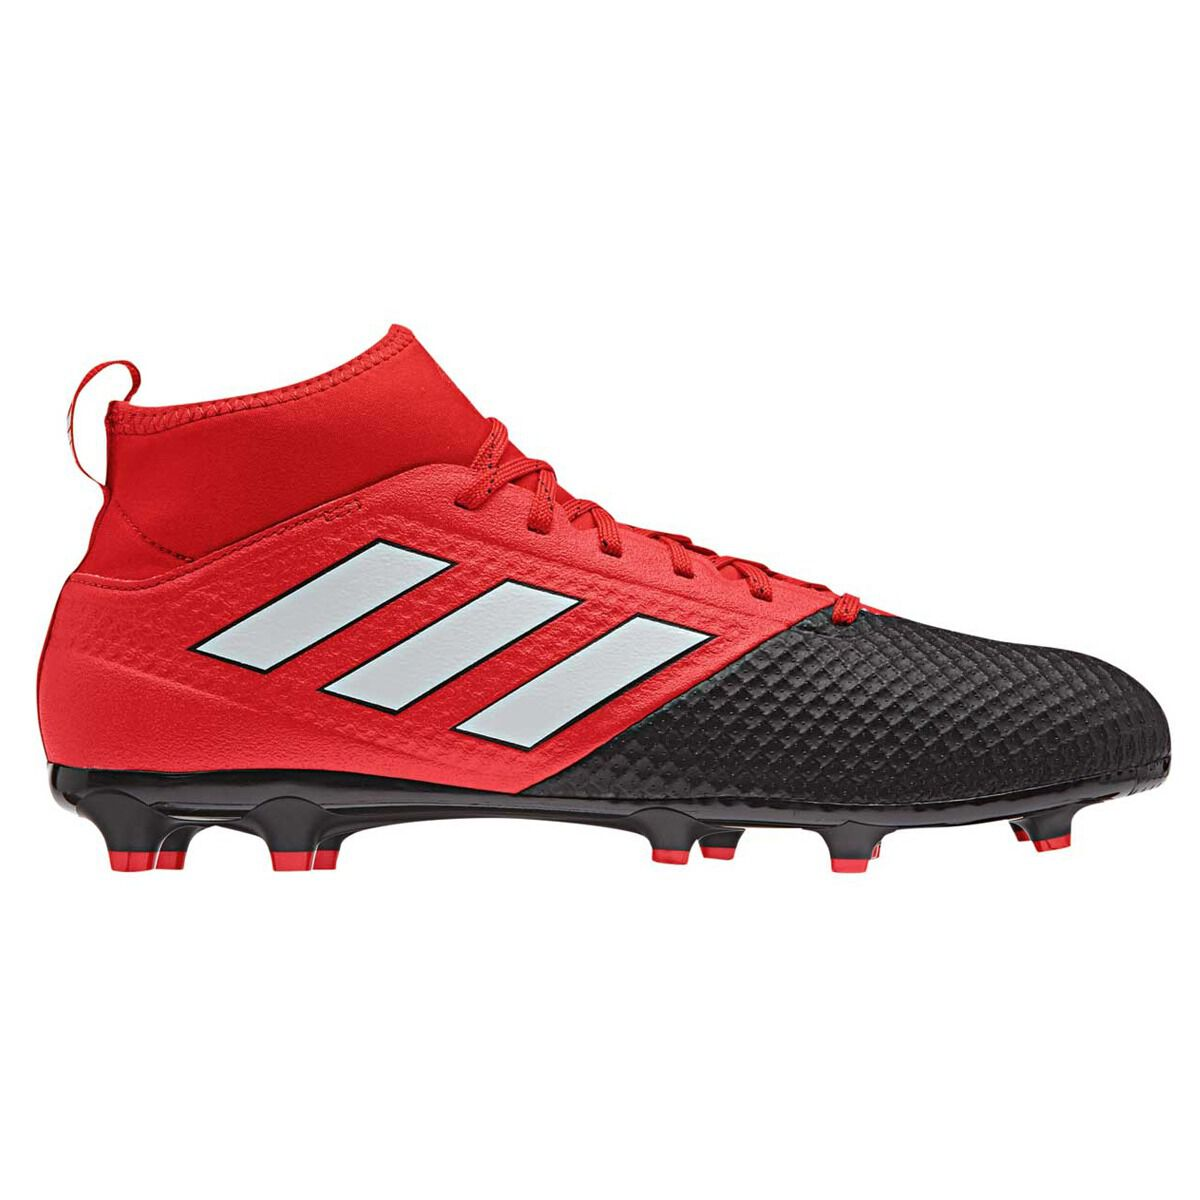 finest selection a3f72 473eb ... sweden adidas ace 17.3 primemesh mens football boots red white us 11  adult red 6fb85 8c58a